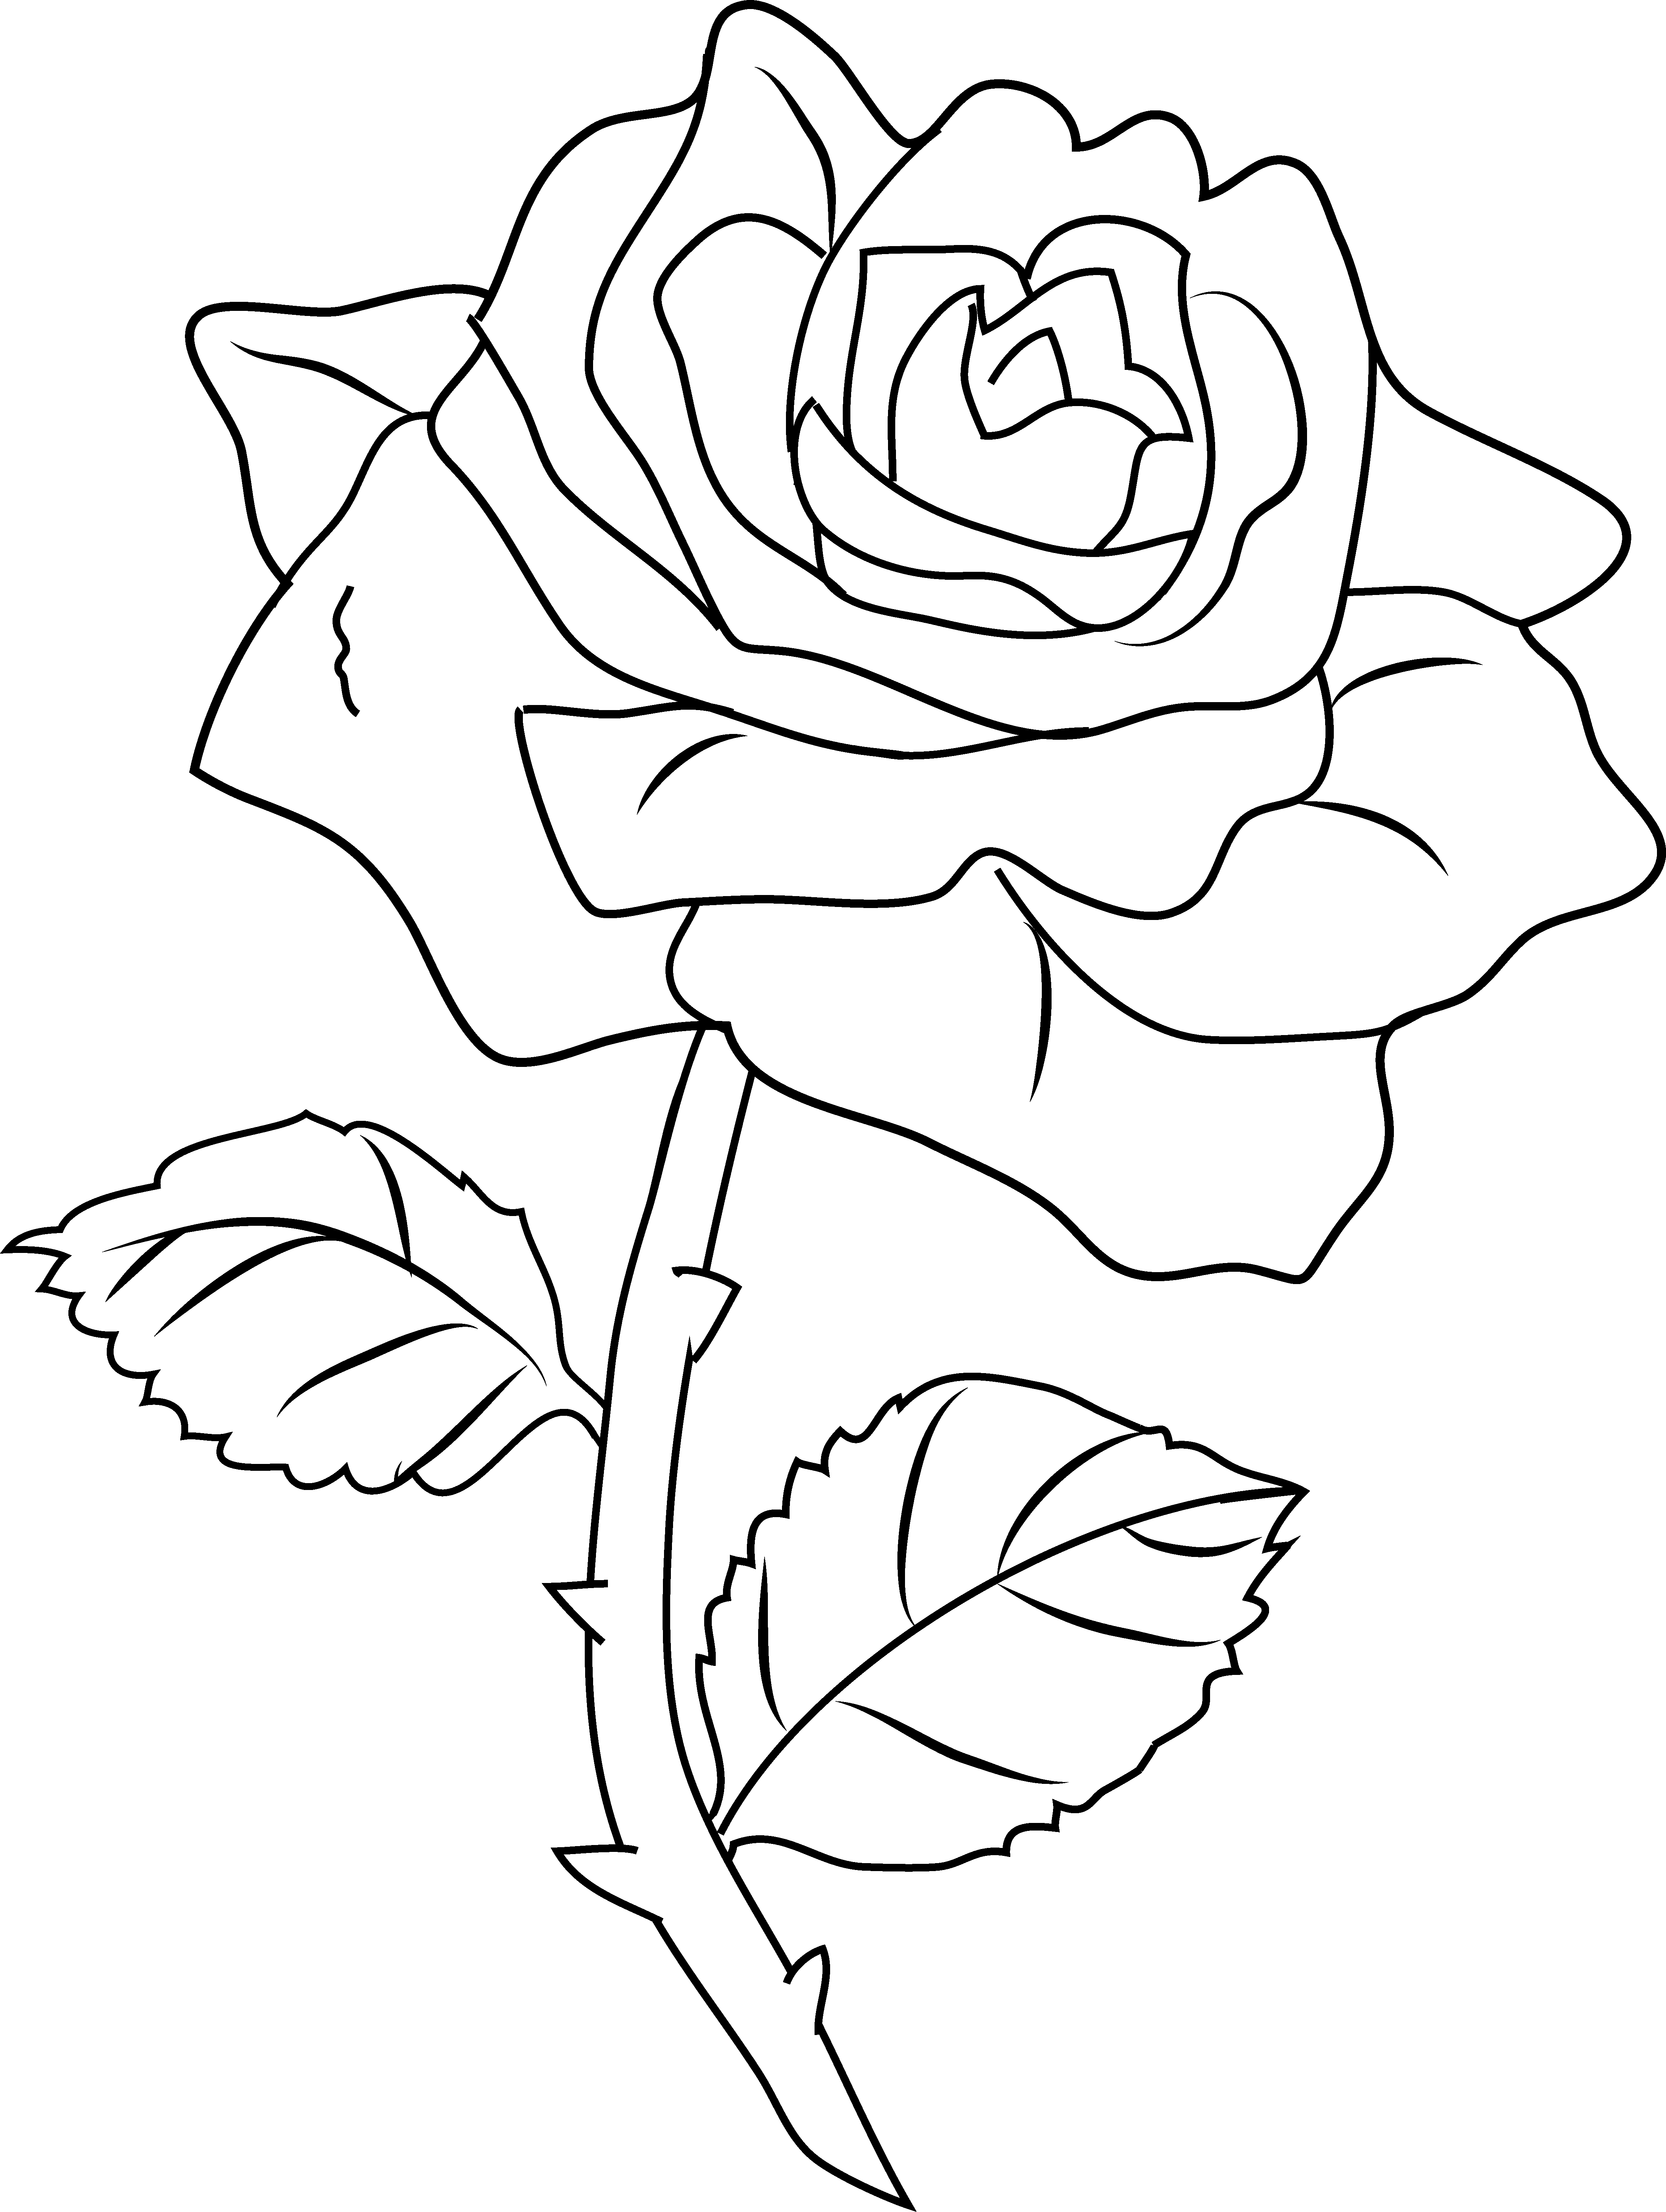 rose coloring pictures roses flowers coloring page free printable coloring pages pictures coloring rose